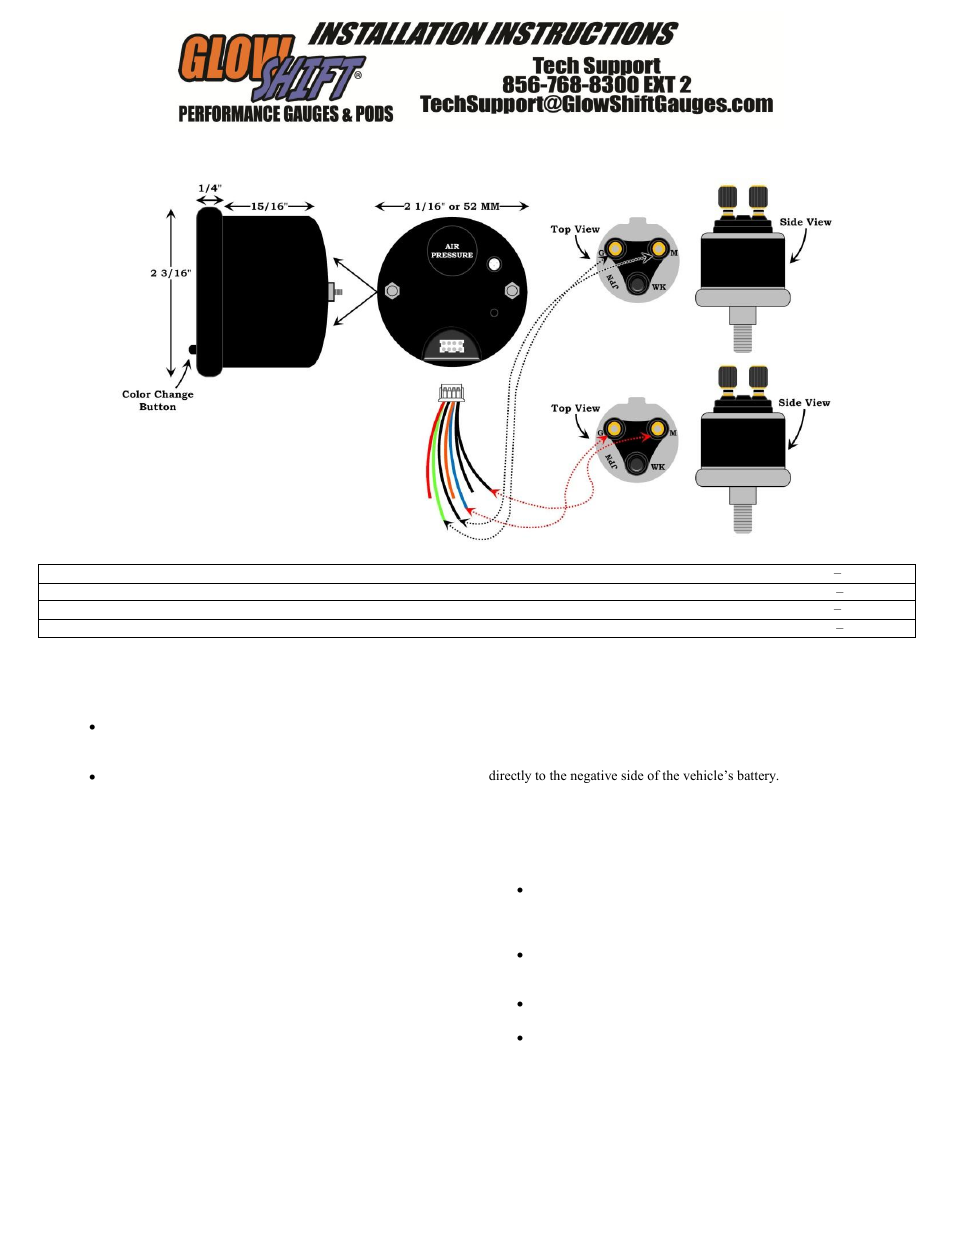 Air Pressure Gauge Wiring Diagram Third Level Gas Glowshift 7 Color Series 220 Psi Dual Digital